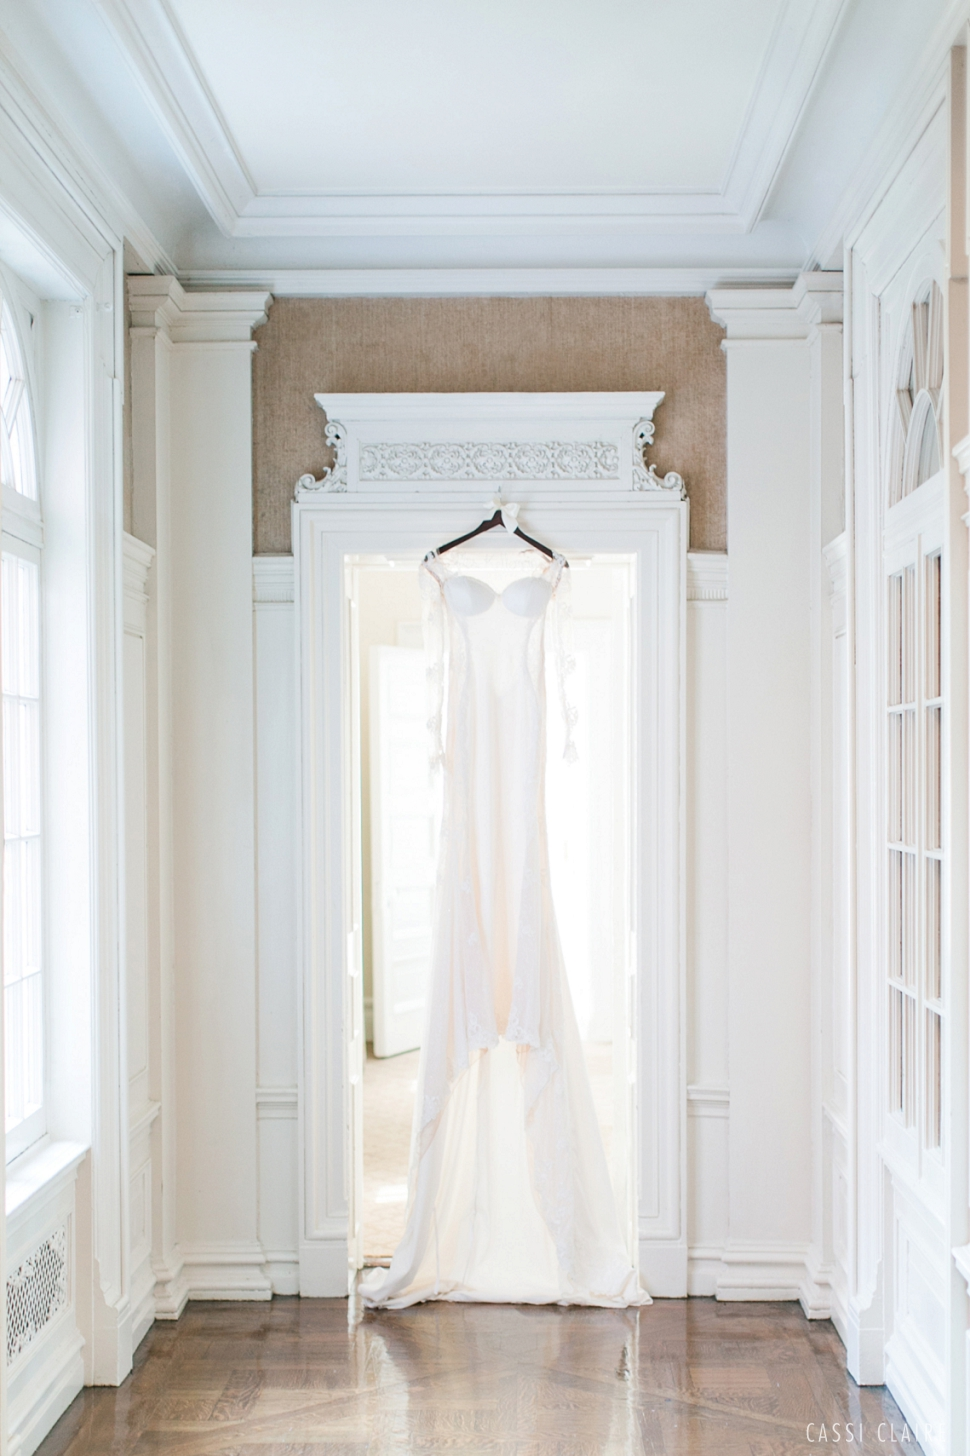 Bourne-Mansion-Wedding-Photos_CassiClaire_12.jpg